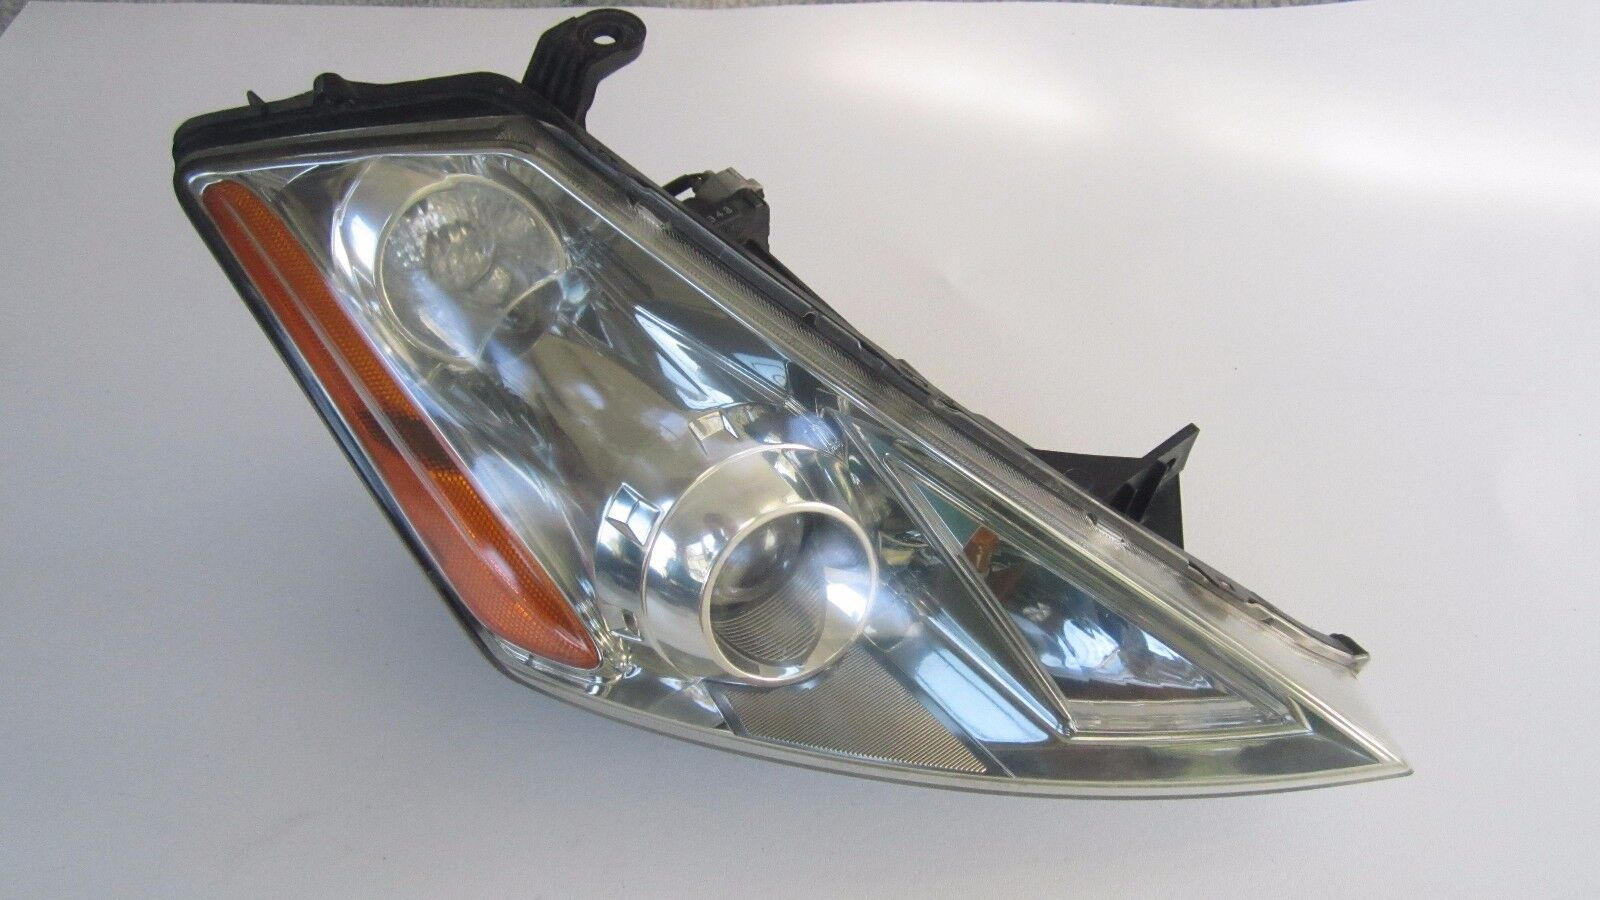 Buy Used Light Bulbs From Top Rated Salvage Yards 2007 Nissan Murano Xenon Headlamp Wiring Diagram 2003 Right Headlight Head Lamp Hid Oem